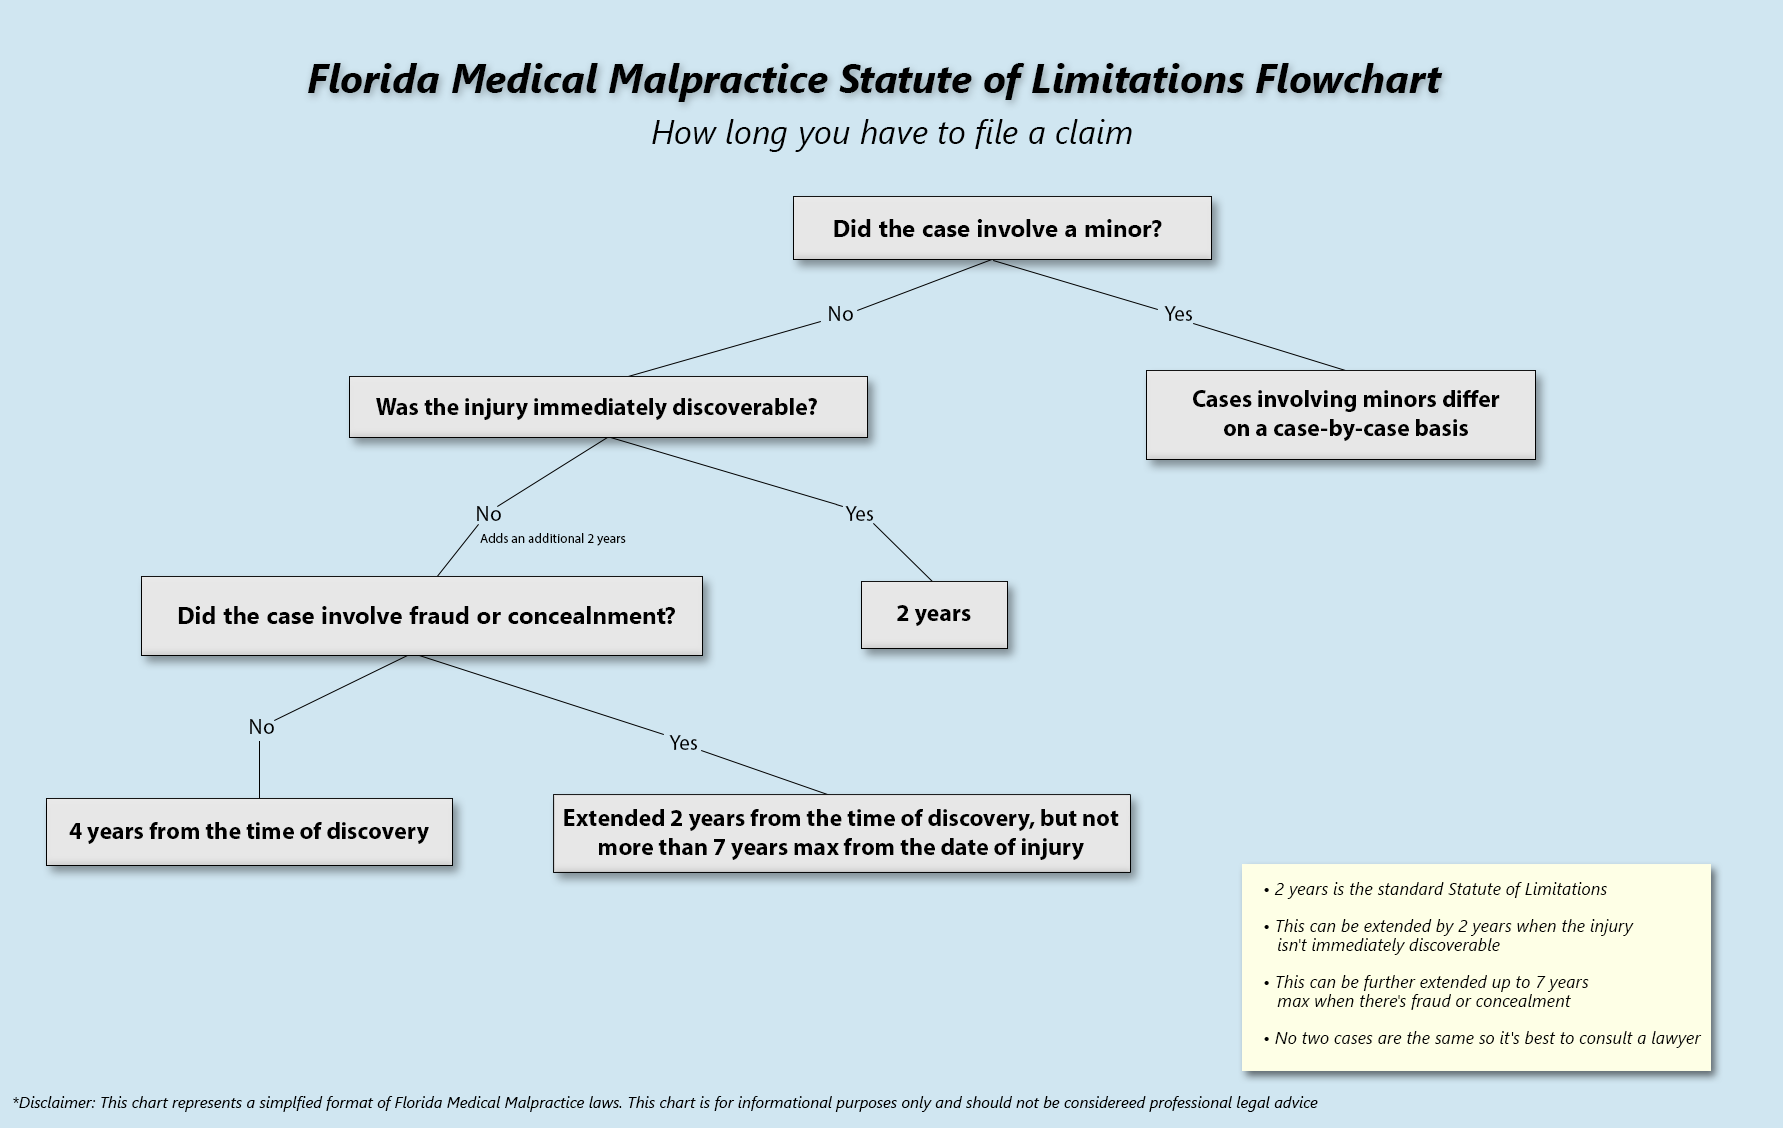 Flowchart representation of Florida medical malpractice laws regarding the statute of limitations and how long someone has to file a claim.